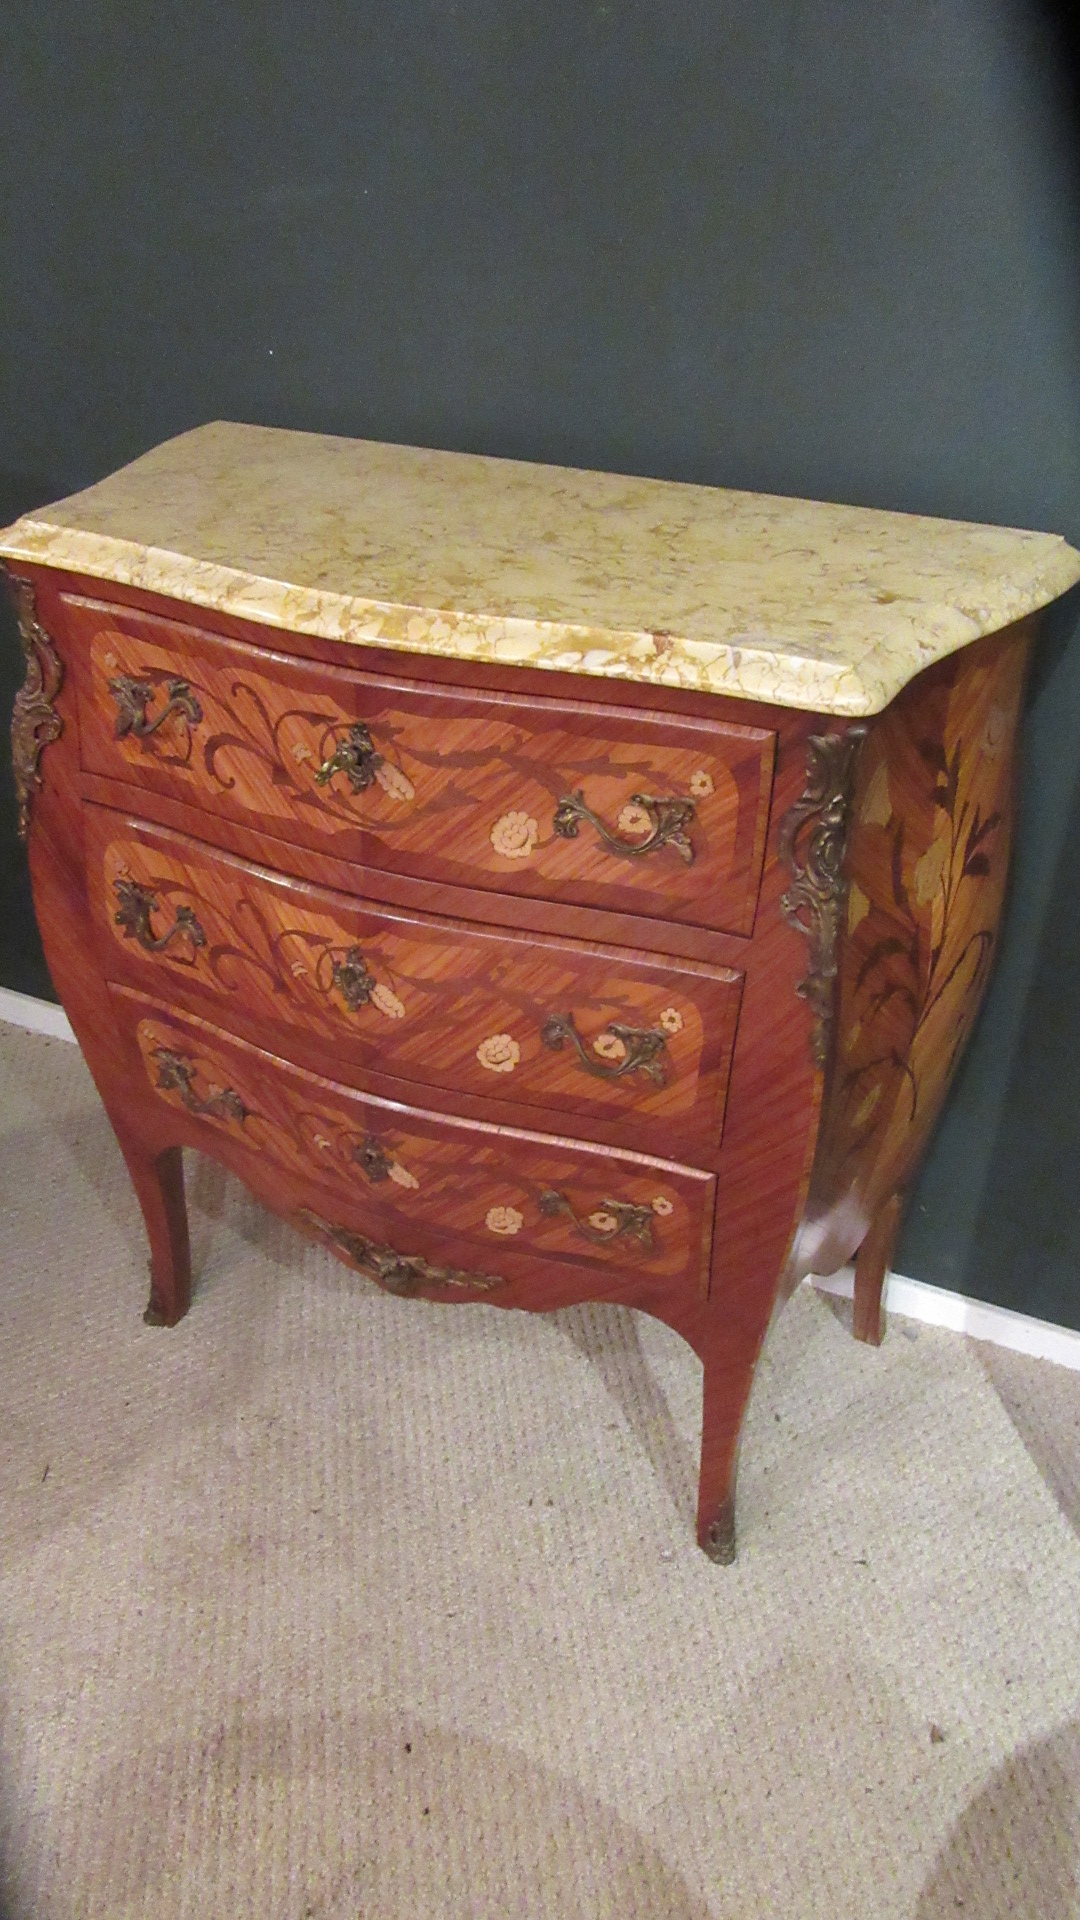 DECORATIVE INLAID FRENCH BOMBE CHEST OF DRAWERS